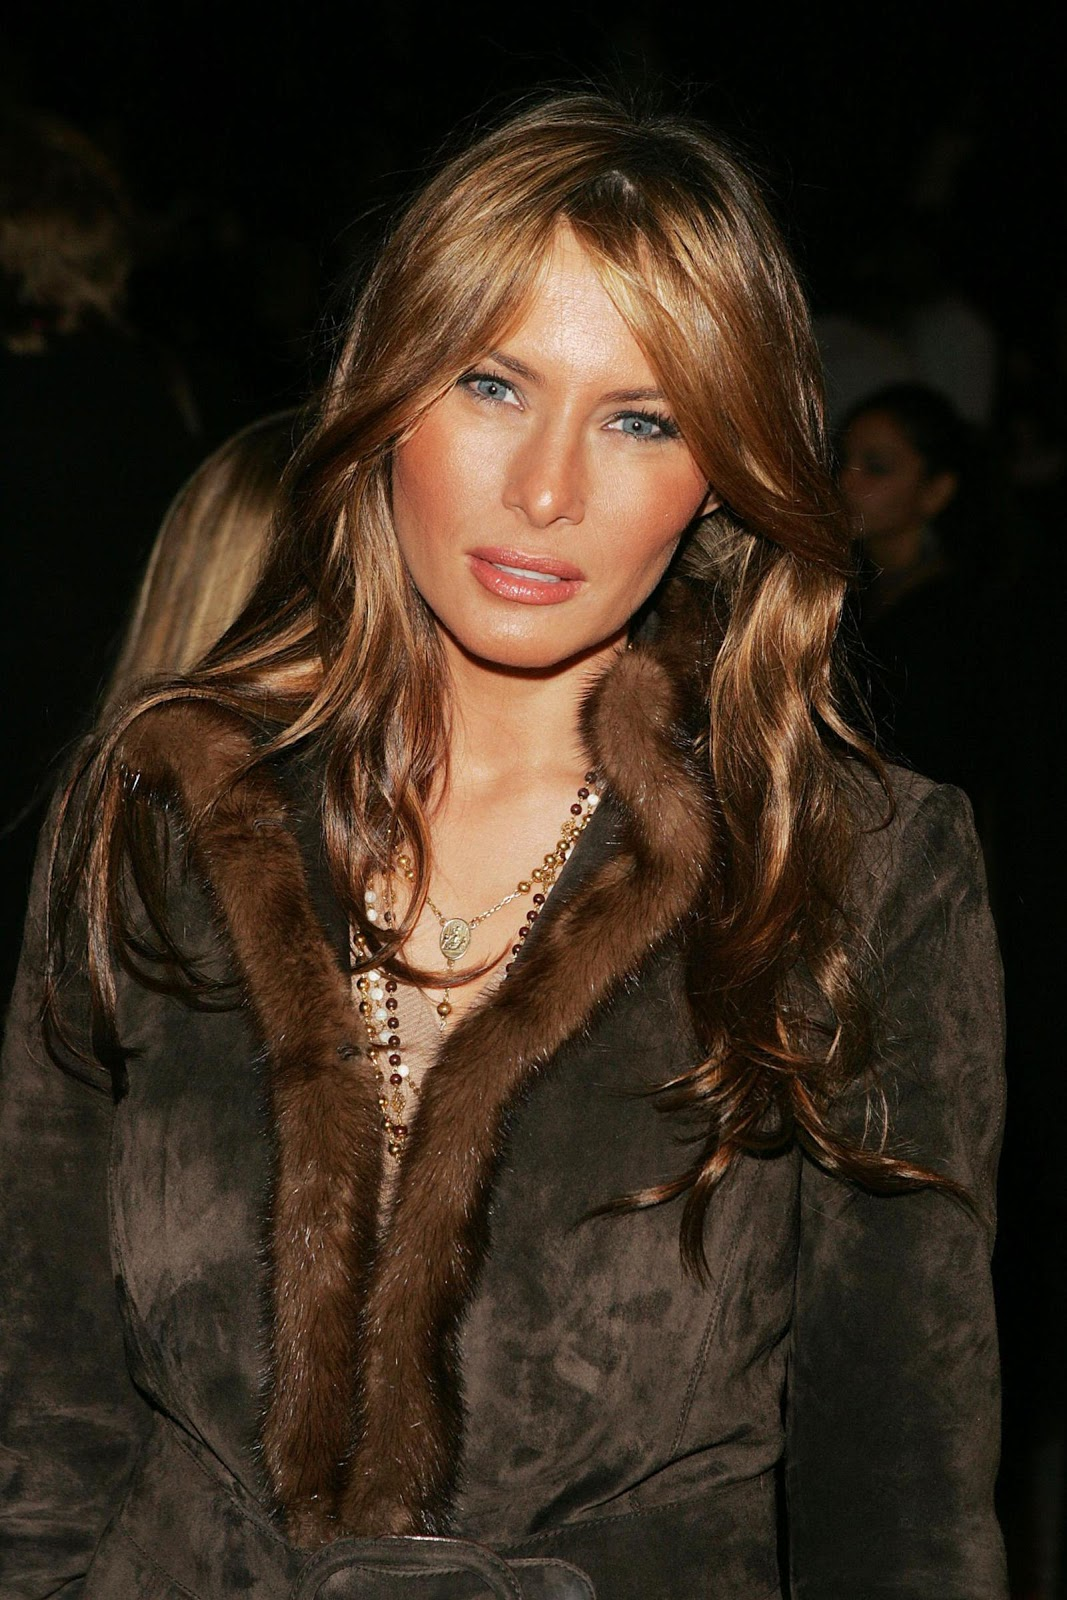 knauss melania photo sexy